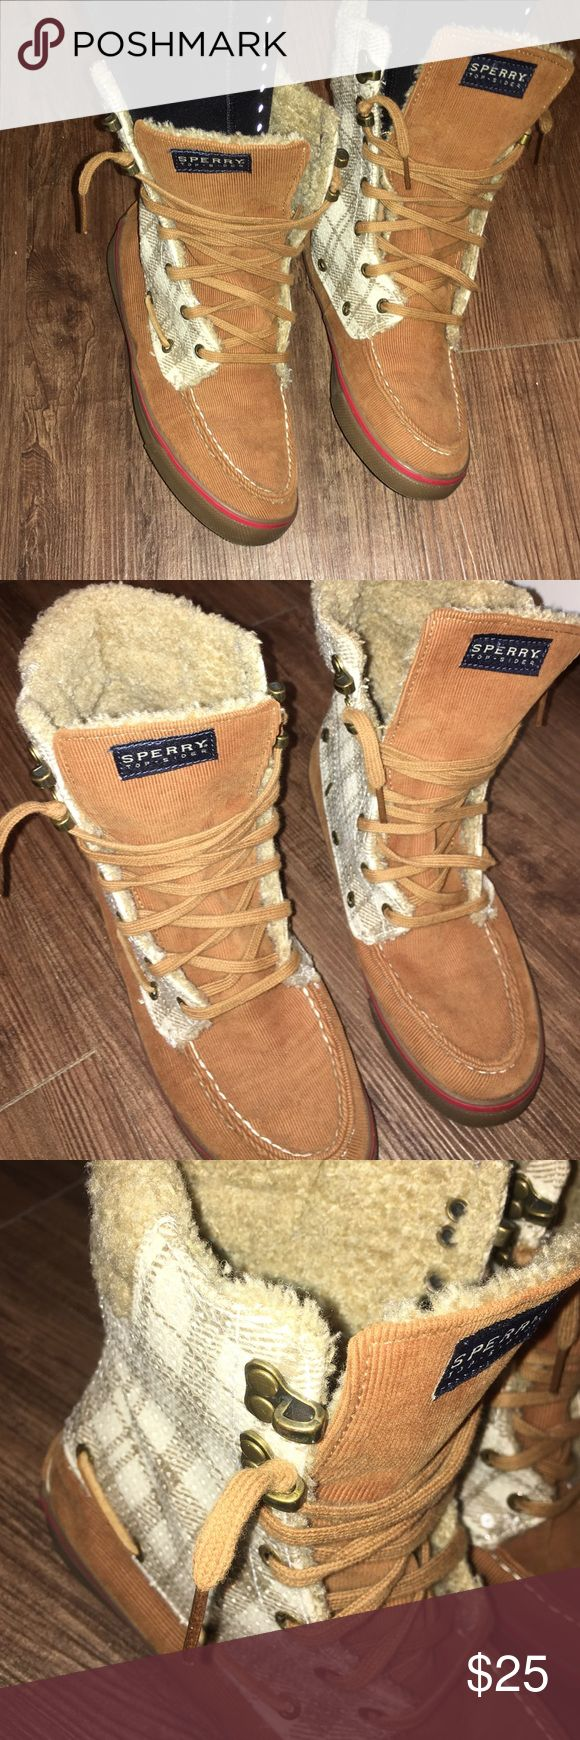 """Sperry Top-Sider Boot Sperry Top-Sider Boot Great condition, minimal wear!  Color: Tan, white Size: 6 1/2 Style: Tan corduroy bottom, white and tan plaid with sequence middle, cream """"wool like"""" top   Original price: $120 Poshmark listing: $25  Smoke free home! Questins please ask! 🙅🏼 trades ❤️ offers 👠👖👗 && ❤️ bundles Sperry Top-Sider Shoes Winter & Rain Boots"""